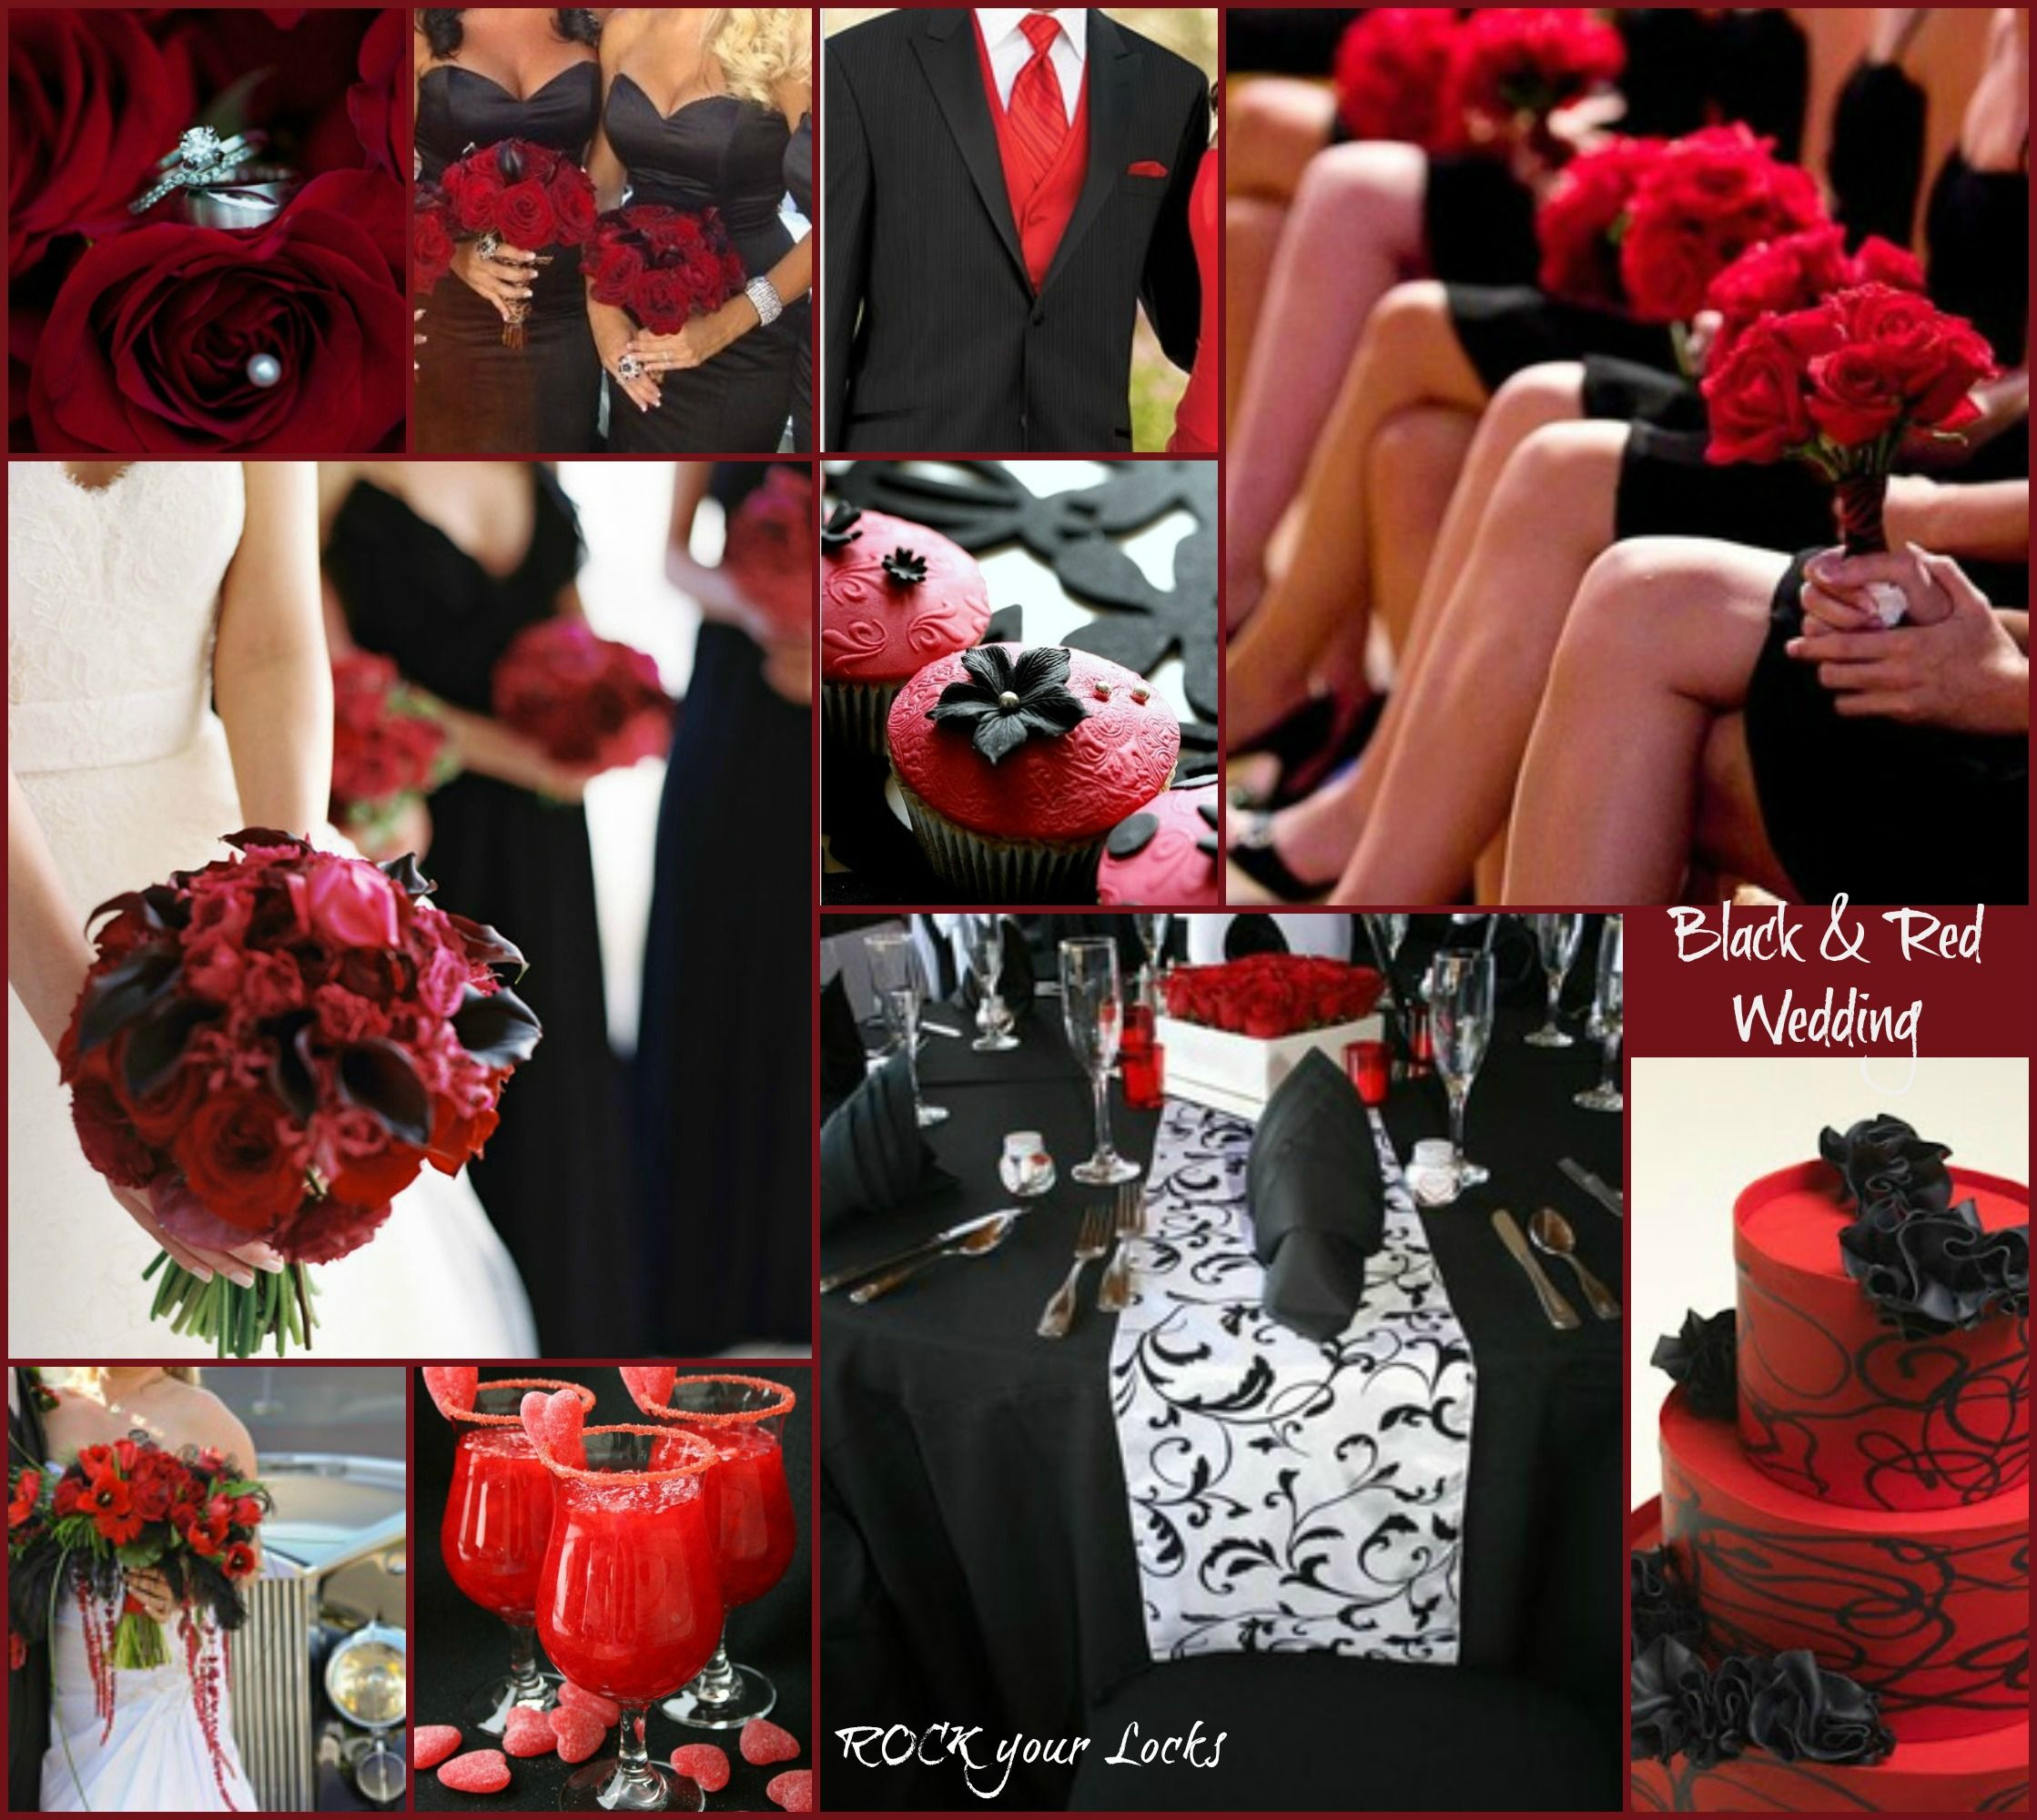 Wedding Red And White Theme: Red And Black Wedding Theme Https://www.facebook.com/photo